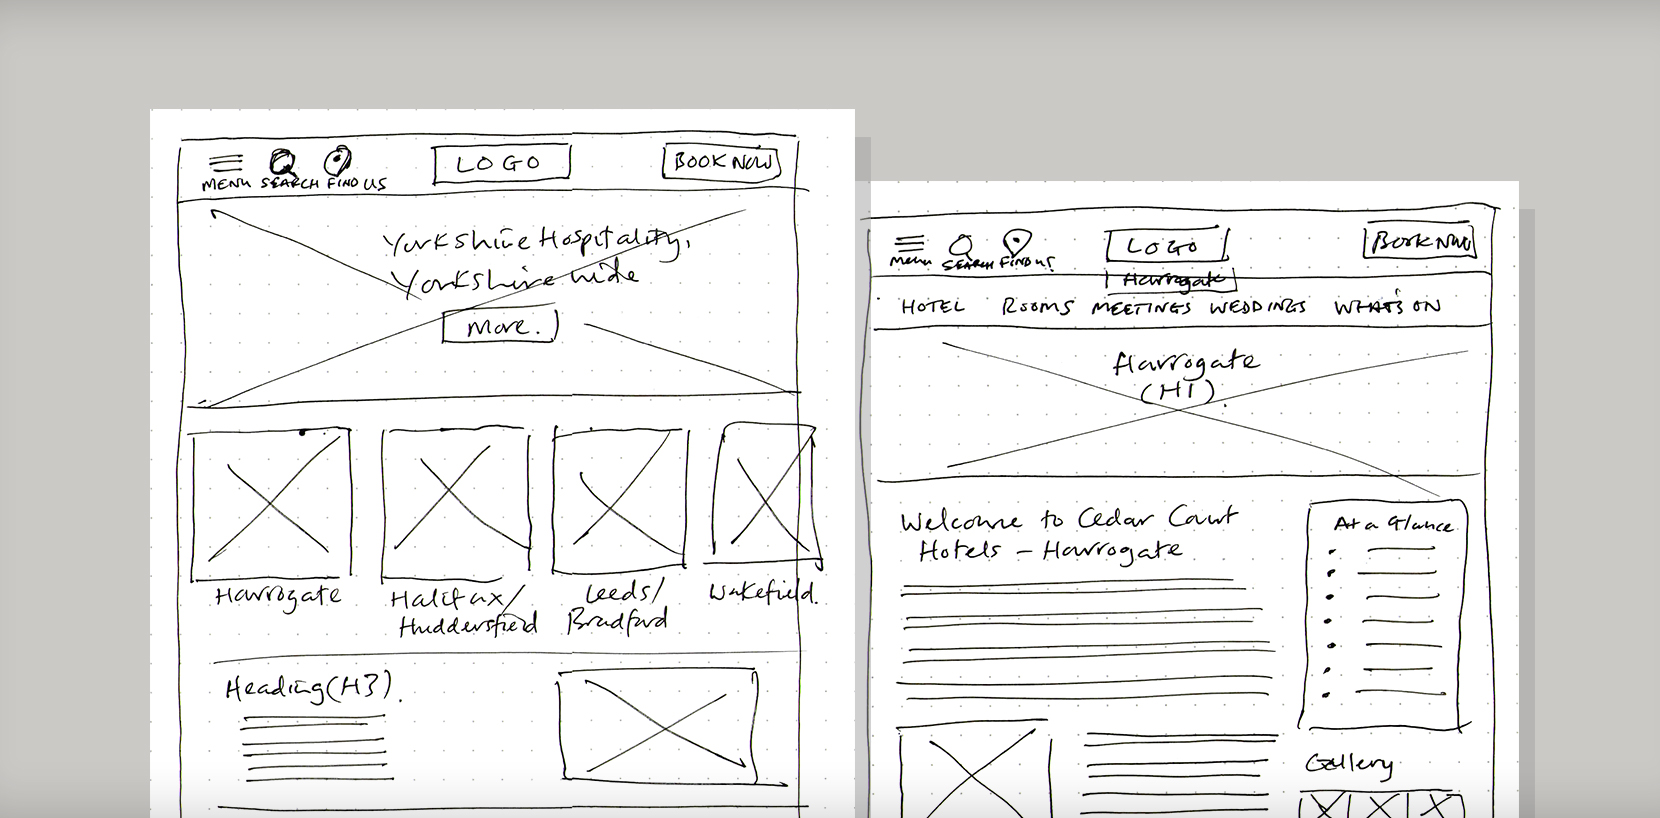 Cedar Court Hotels - UX wireframes